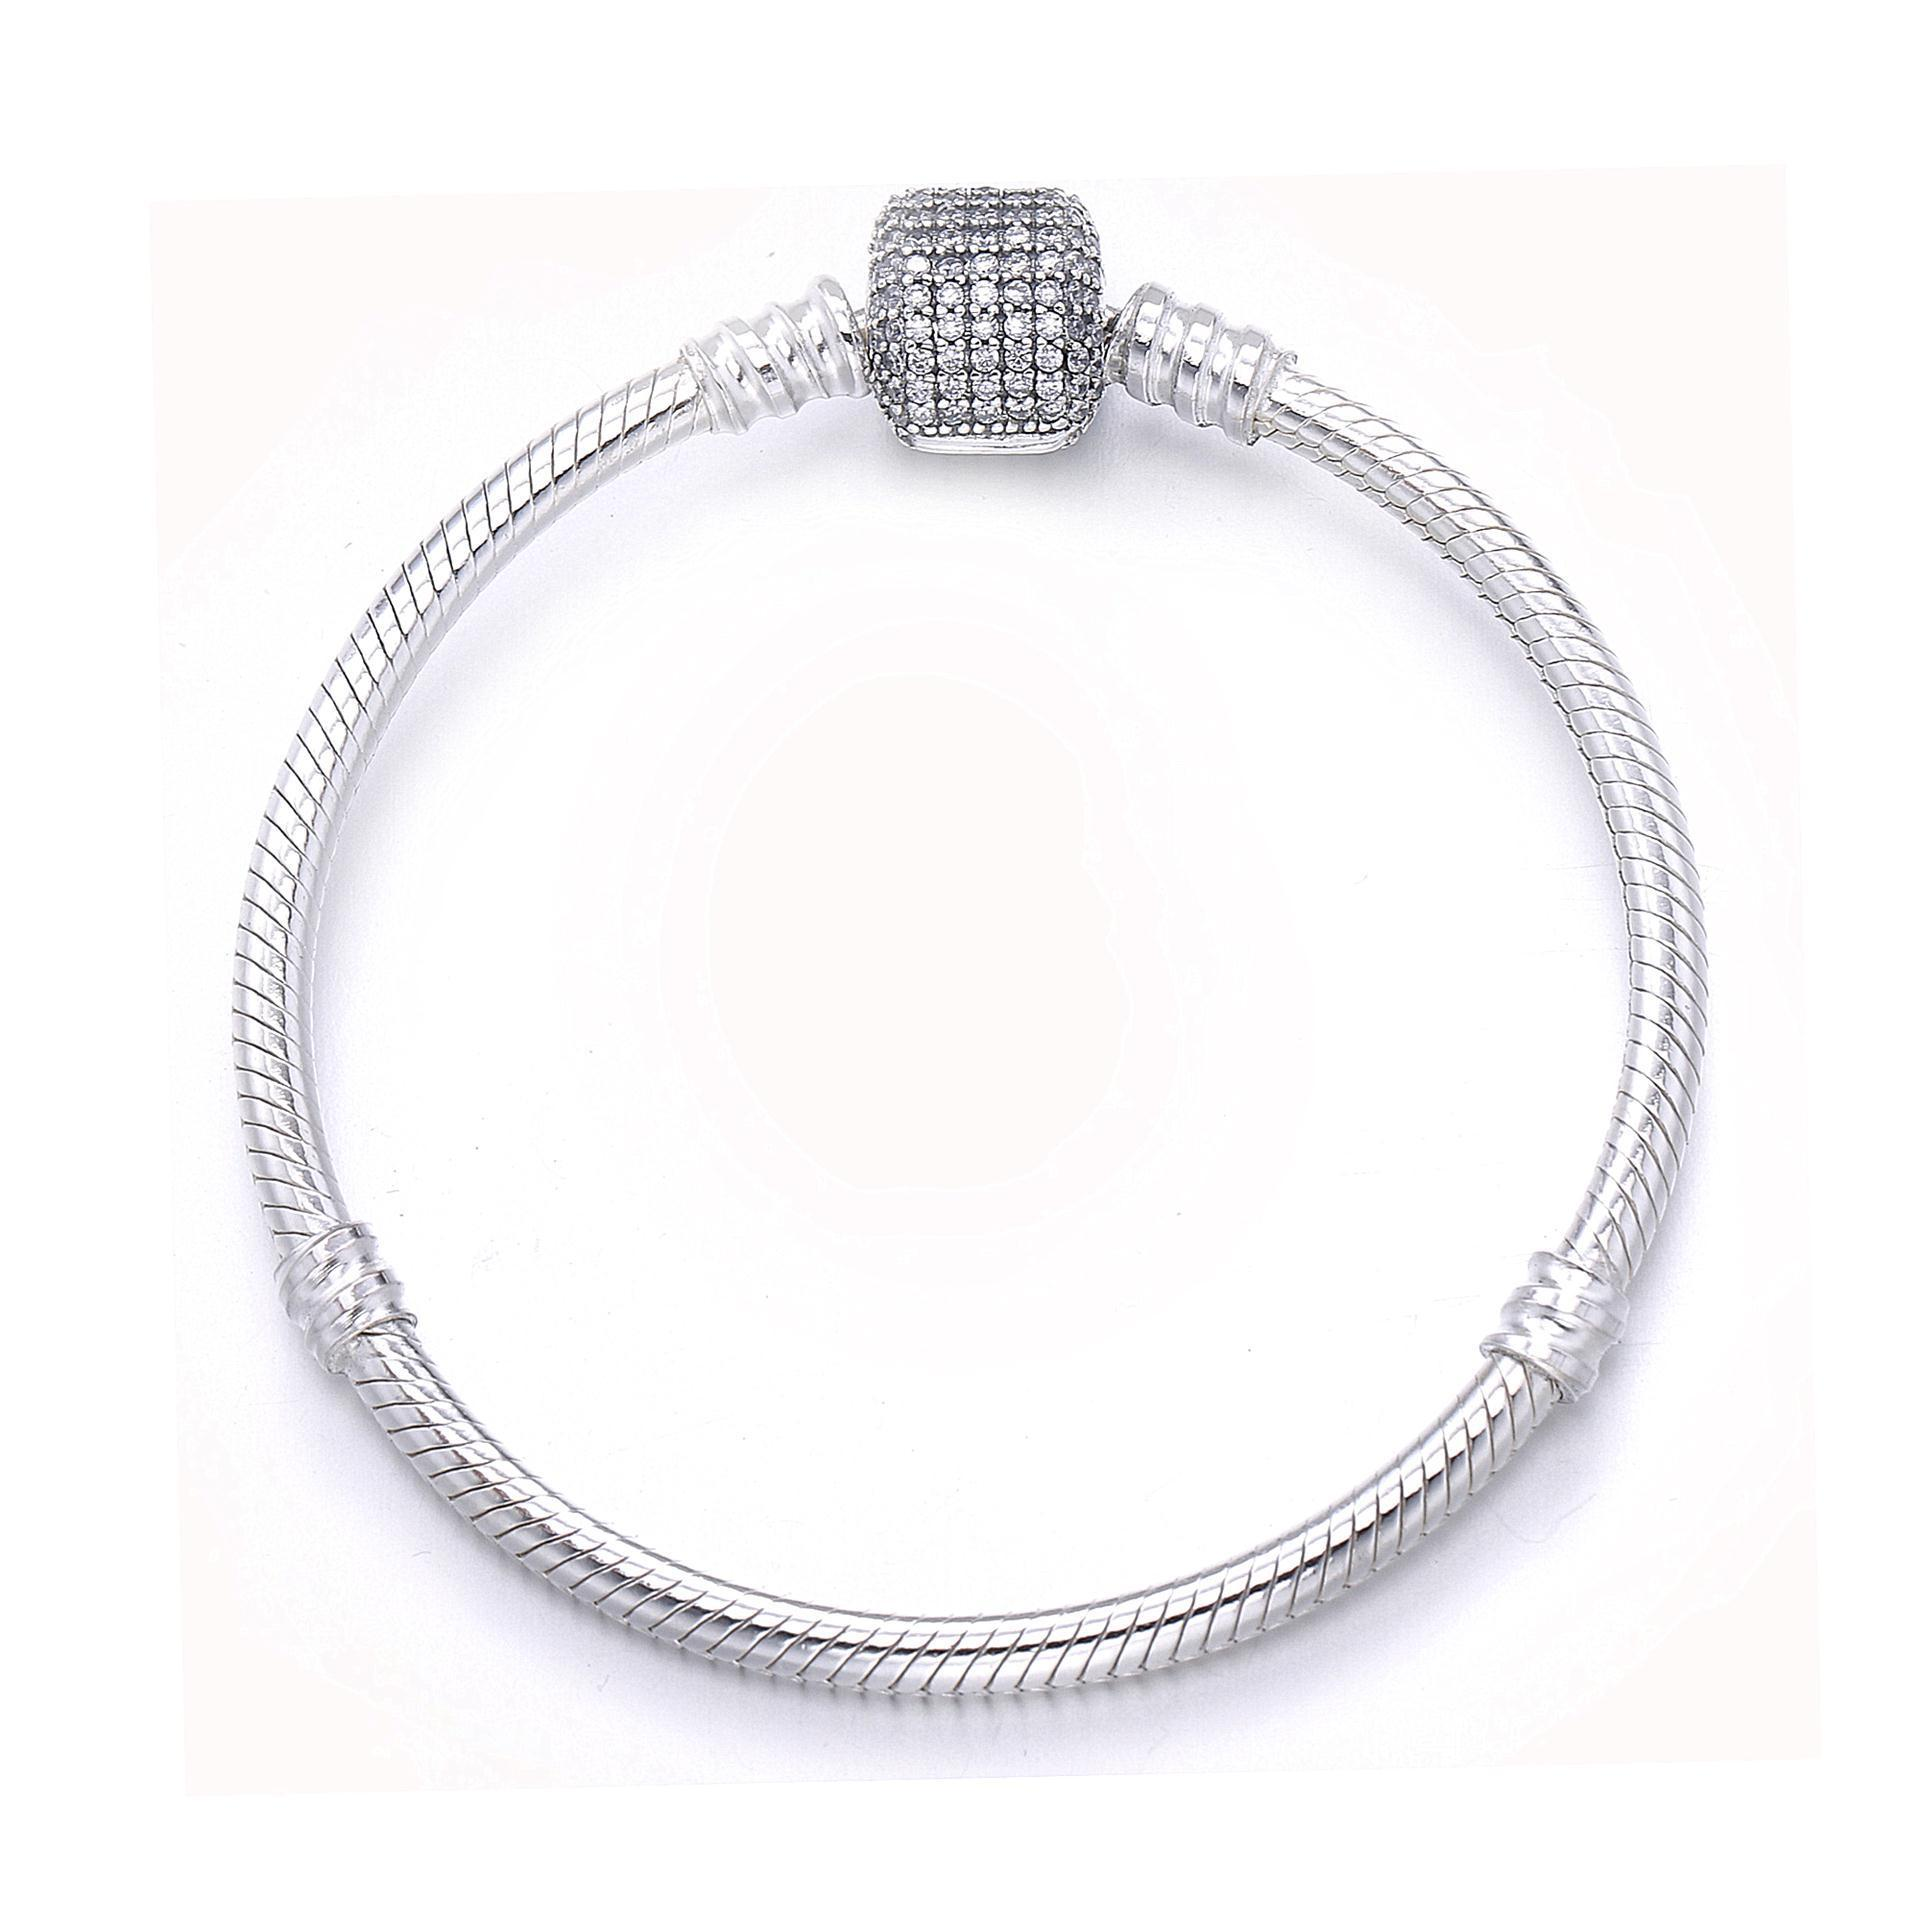 Luxury 100 925 Sterling Silver Bracelet Signature Clasp Crystal Snake Chain Bracelet Bangle Fit Women Bead